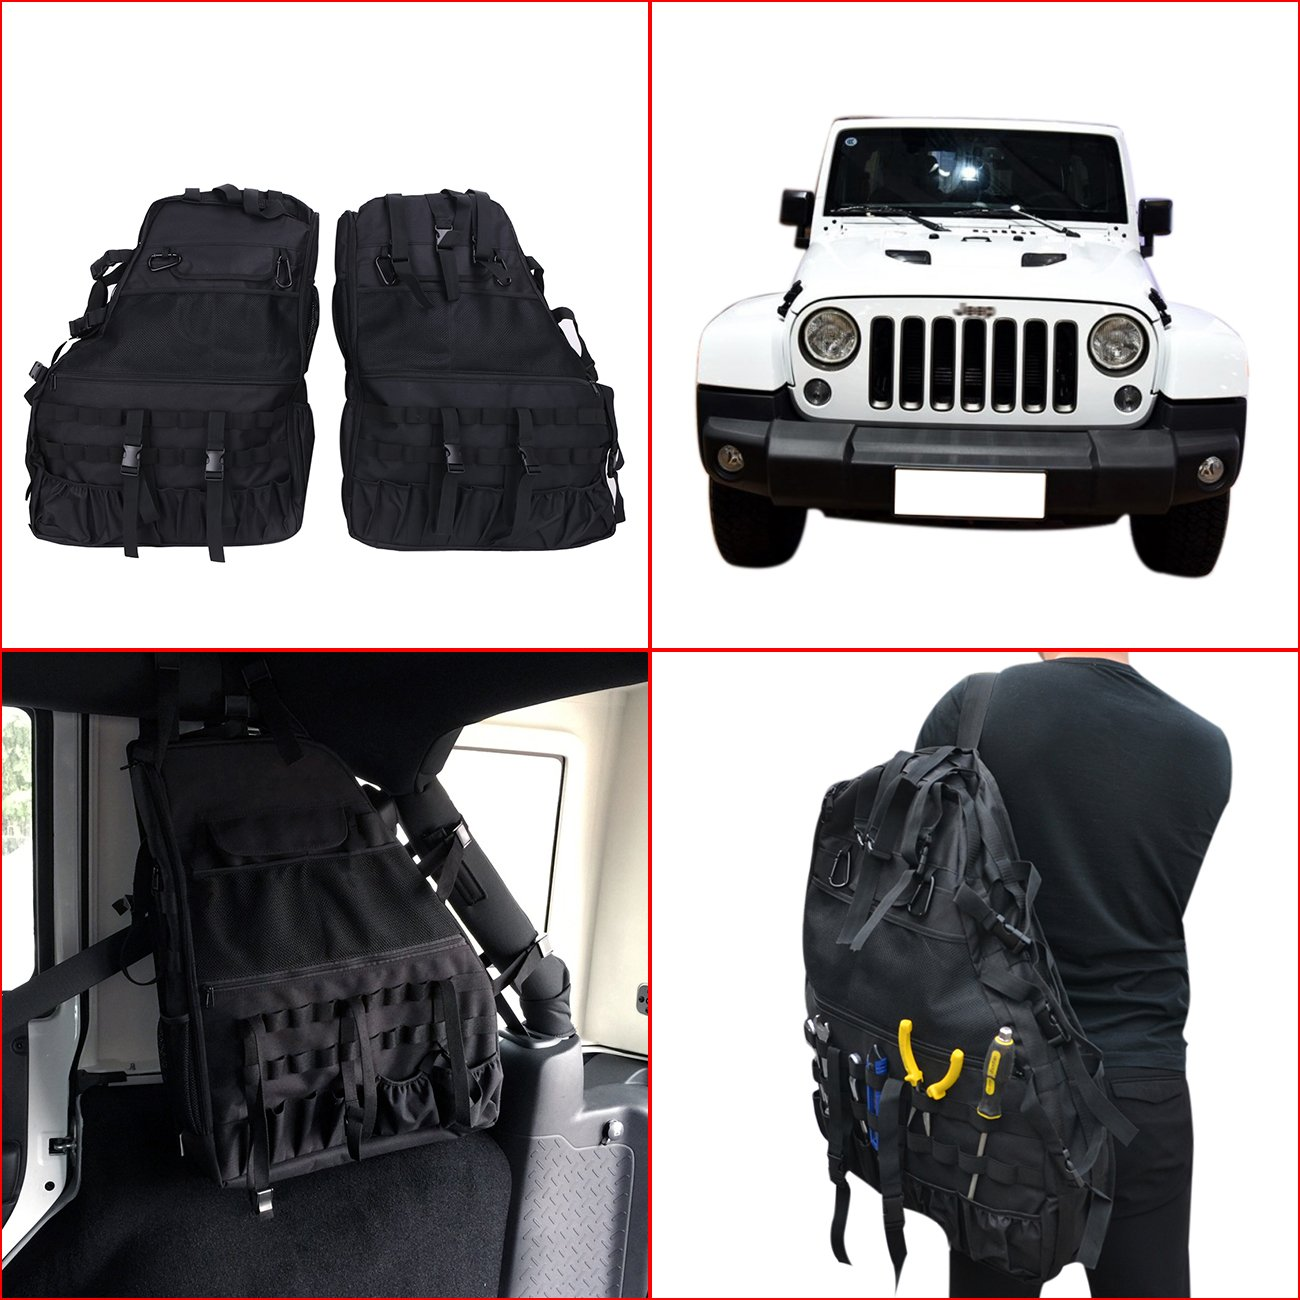 2 pcs Roll Cage Saddlebag Multi-Pockets Storage & Organizers & Cargo Bag for Jeep Wrangler JK 4-door Tool Kits Bottle Drink Phone Tissue Gadget Holder 2007-2016